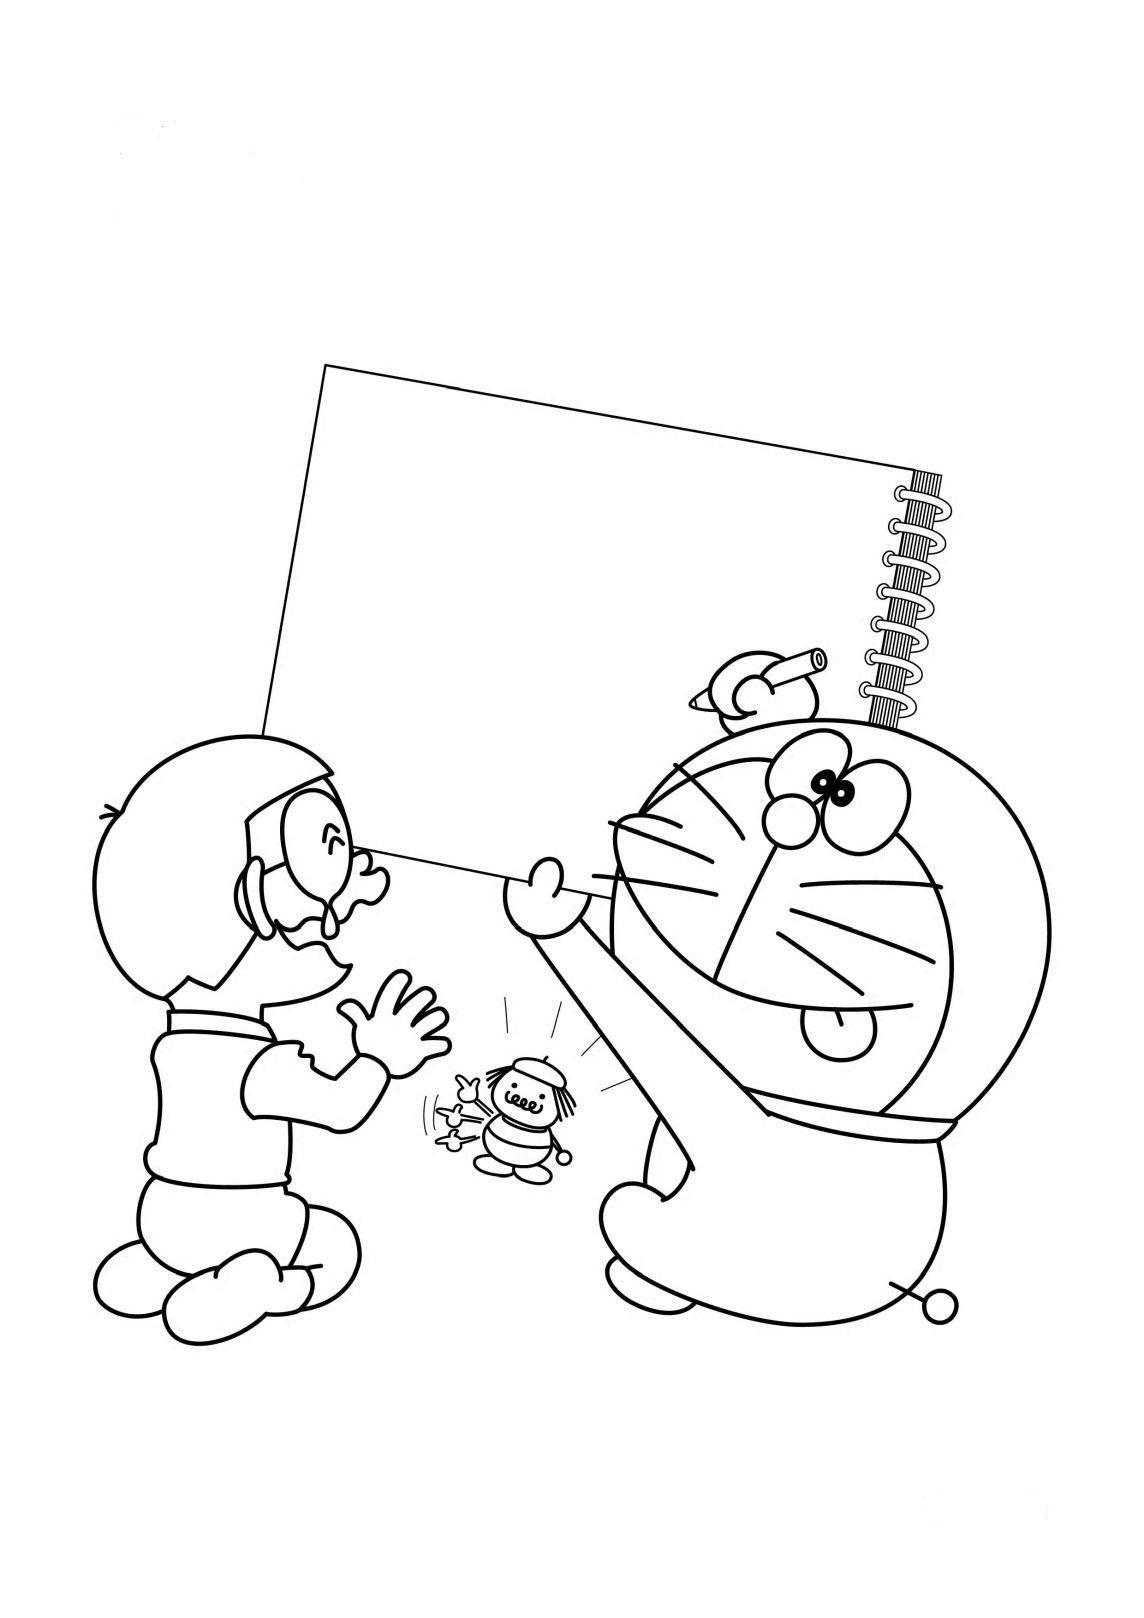 Doraemon draws for nobita coloring page boys pages of